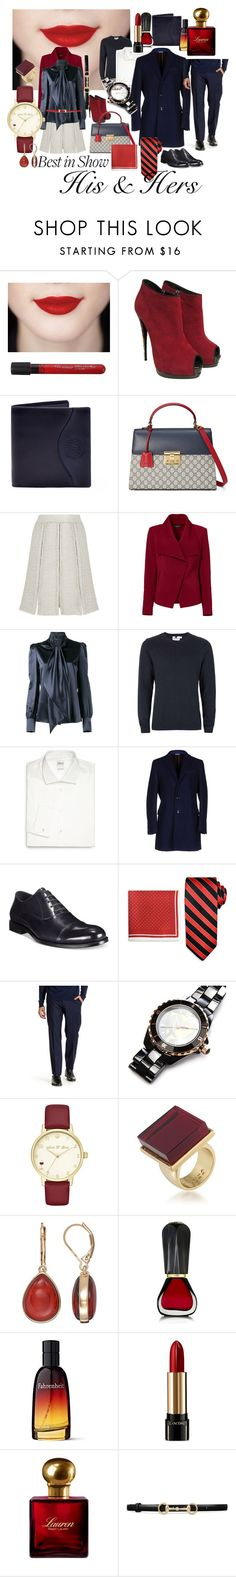 """My Beloved is Mine"" by bevrosette ❤ liked on Polyvore featuring Giuseppe Zanotti, Ghurka, Gucci, Proenza Schouler, Greylin, Yves Saint Laurent, Topman, Armani Collezioni, Manuel Ritz and Kenneth Cole"